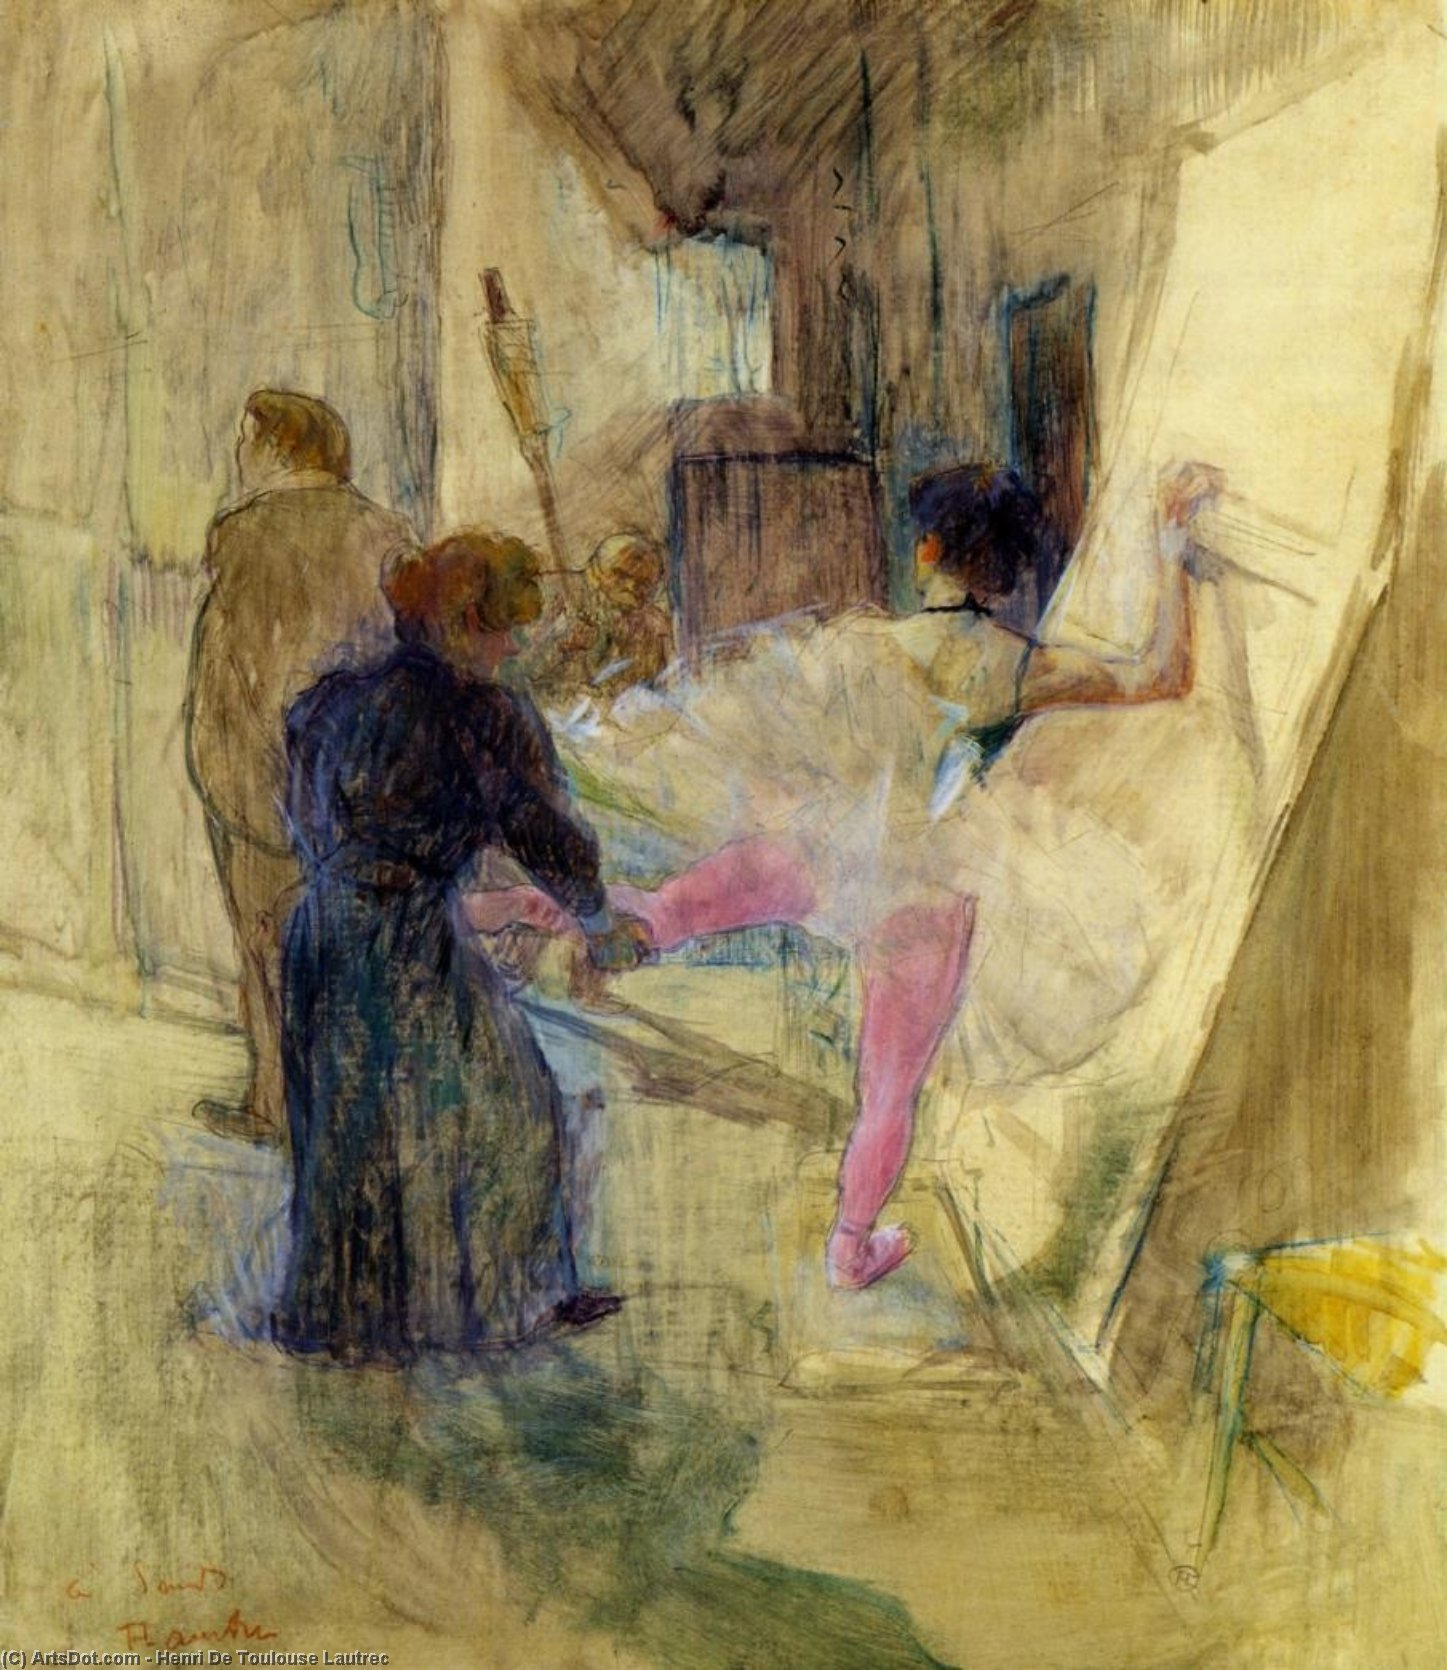 Behind the Scenes, 1899 by Henri De Toulouse Lautrec (1864-1901, France)